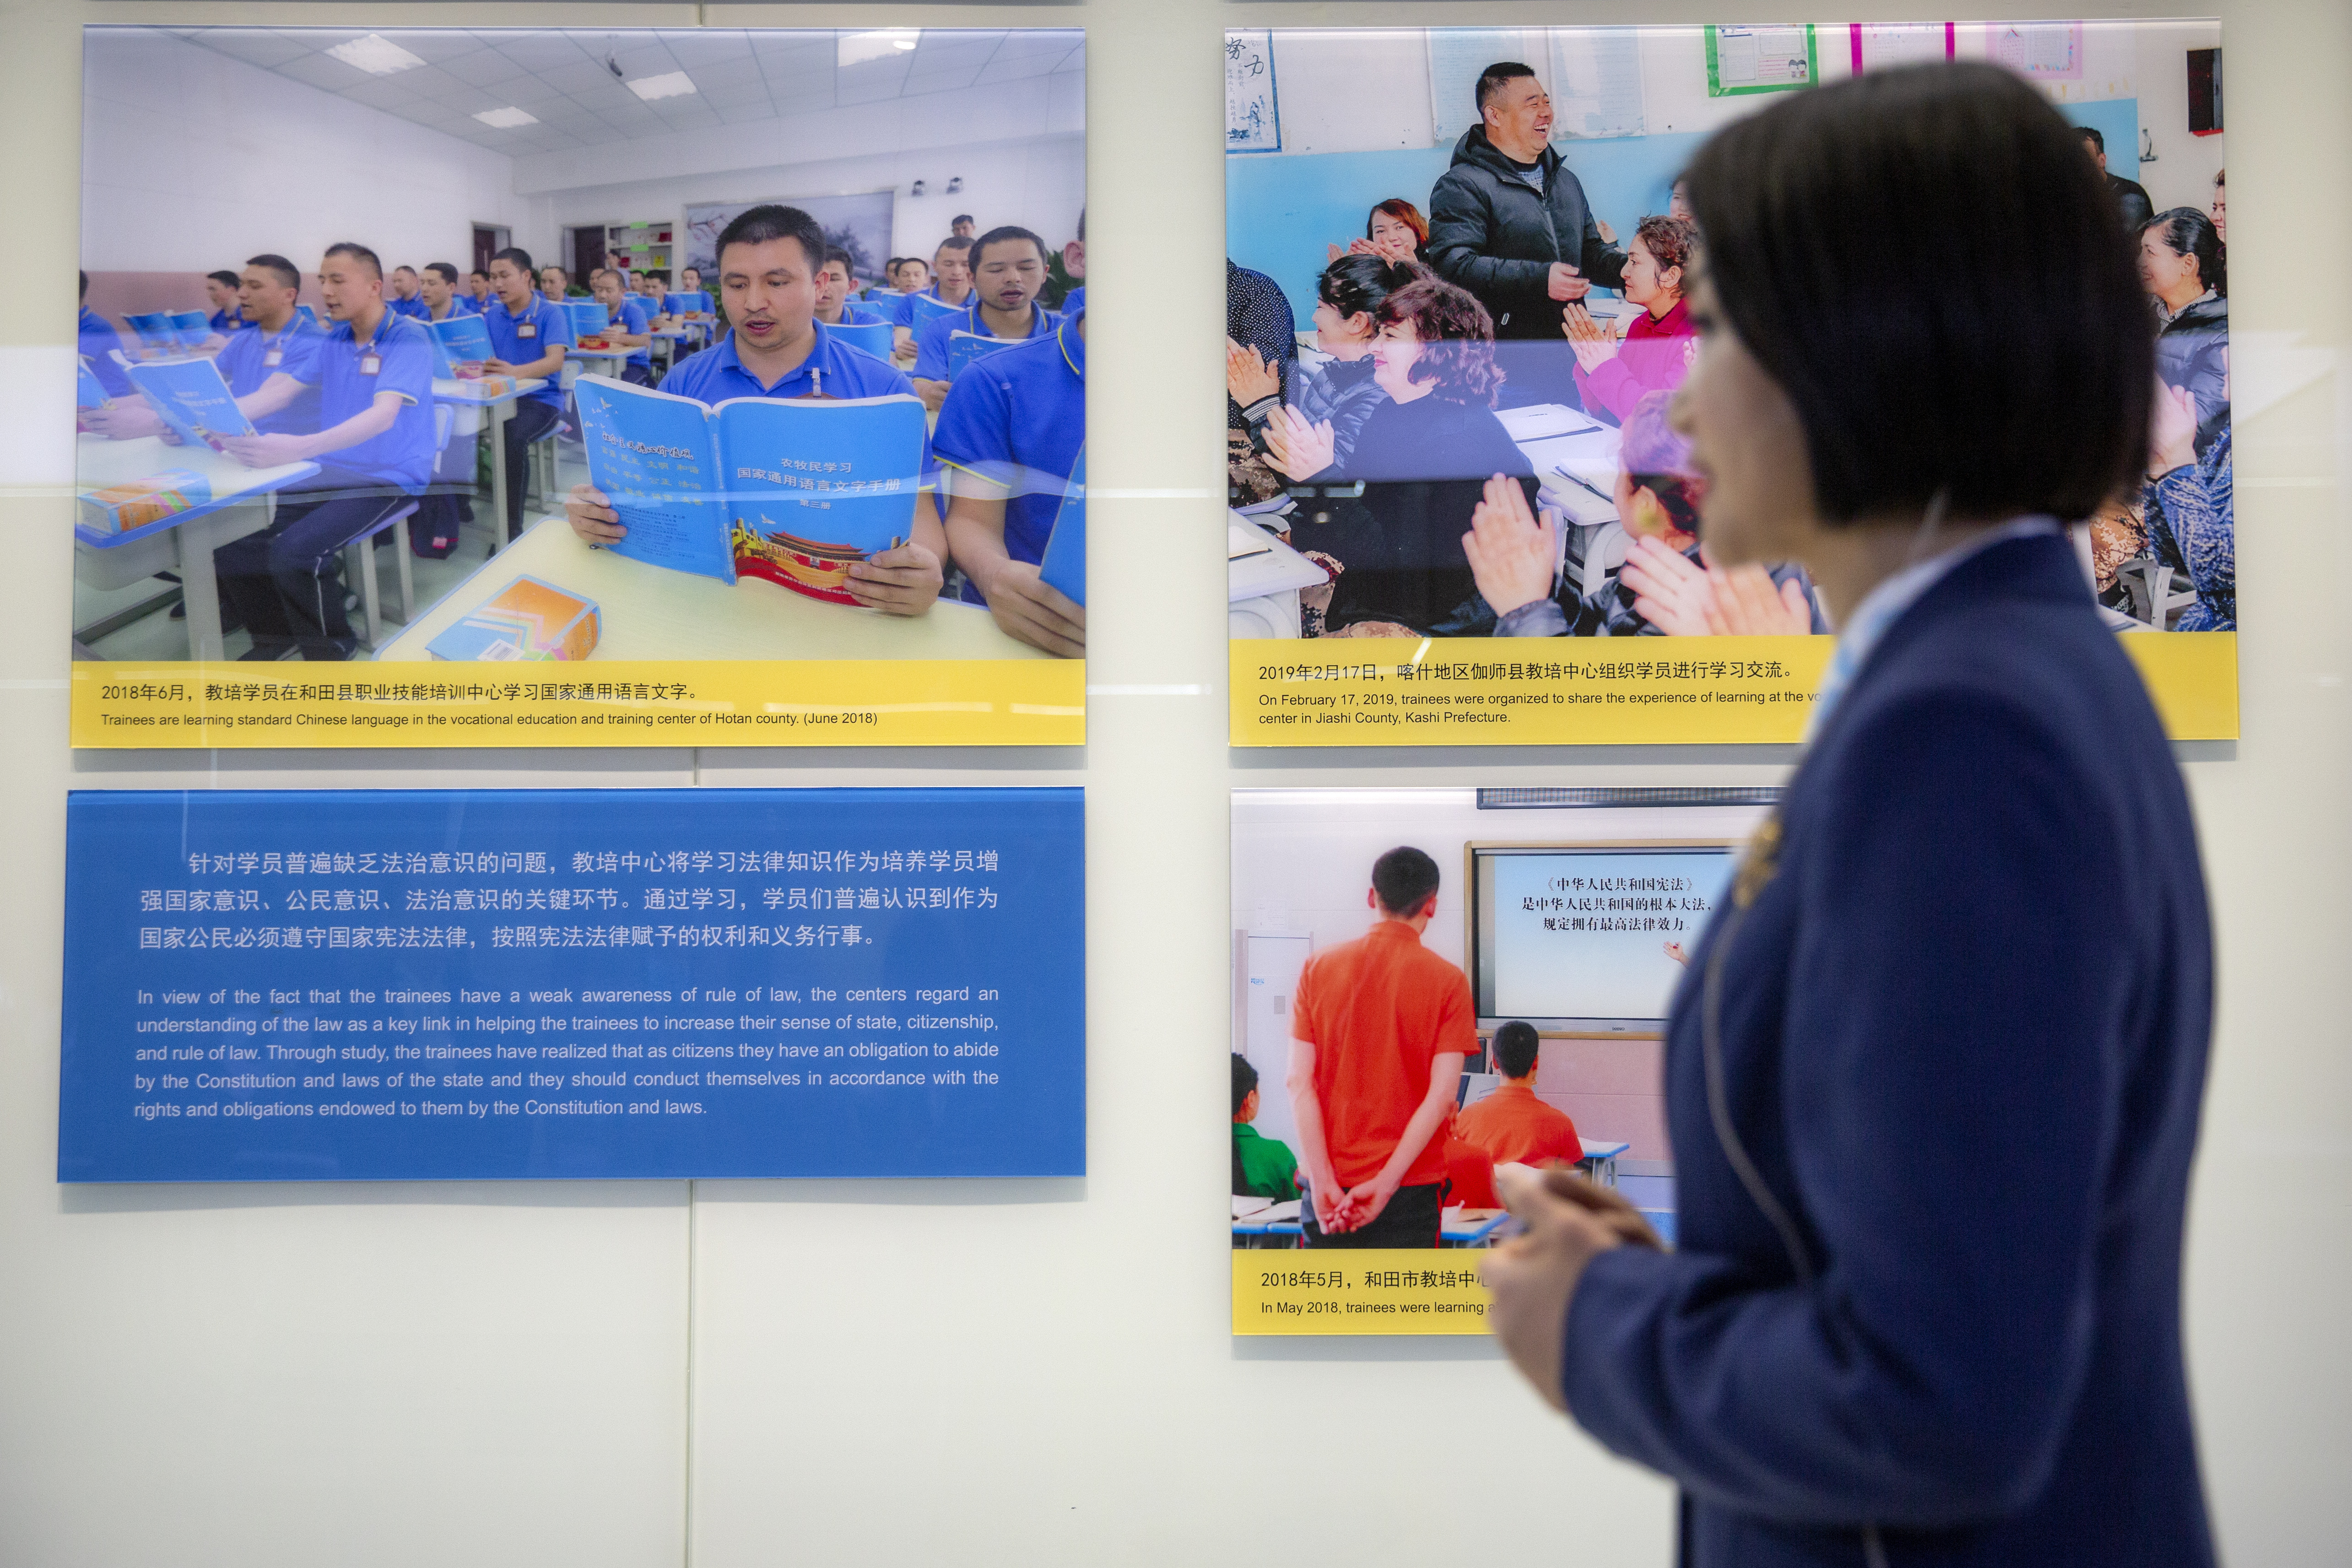 A tour guide stands near a display showing images of people at locations described as vocational training centers in southern Xinjiang at the Exhibition of the Fight Against Terrorism and Extremism in Urumqi in western China's Xinjiang Uyghur Autonomous Region  on April 21, 2021. Human rights groups and Western nations led by the United States, Britain and Germany accused China of massive crimes against the Uyghur minority and demanded unimpeded access for U.N. experts at a virtual meeting on Wednesday, May 12, 2021 denounced by China as  politically motivated  and based on  lies.